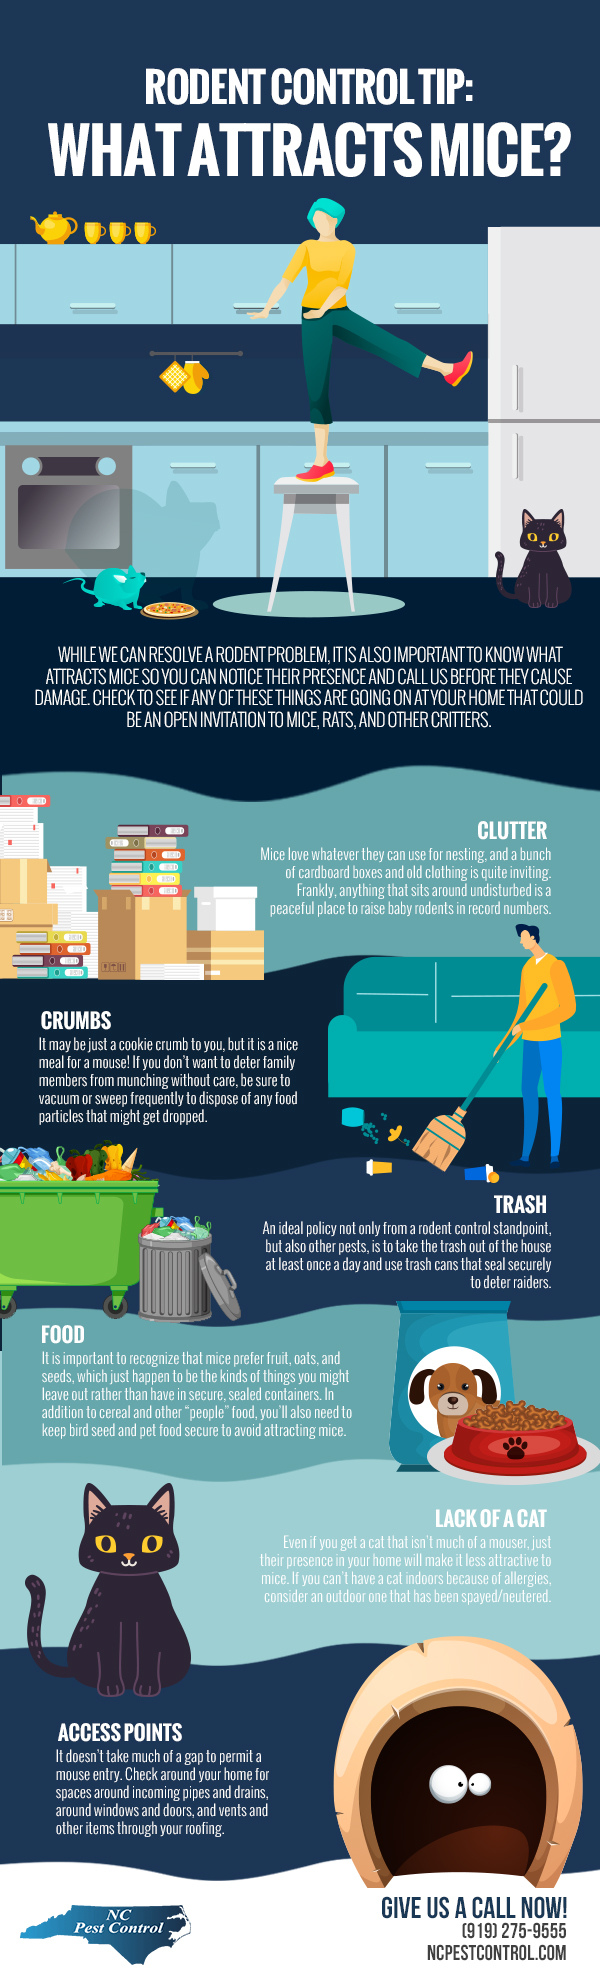 Rodent Control Tip: What Attracts Mice? [infographic]